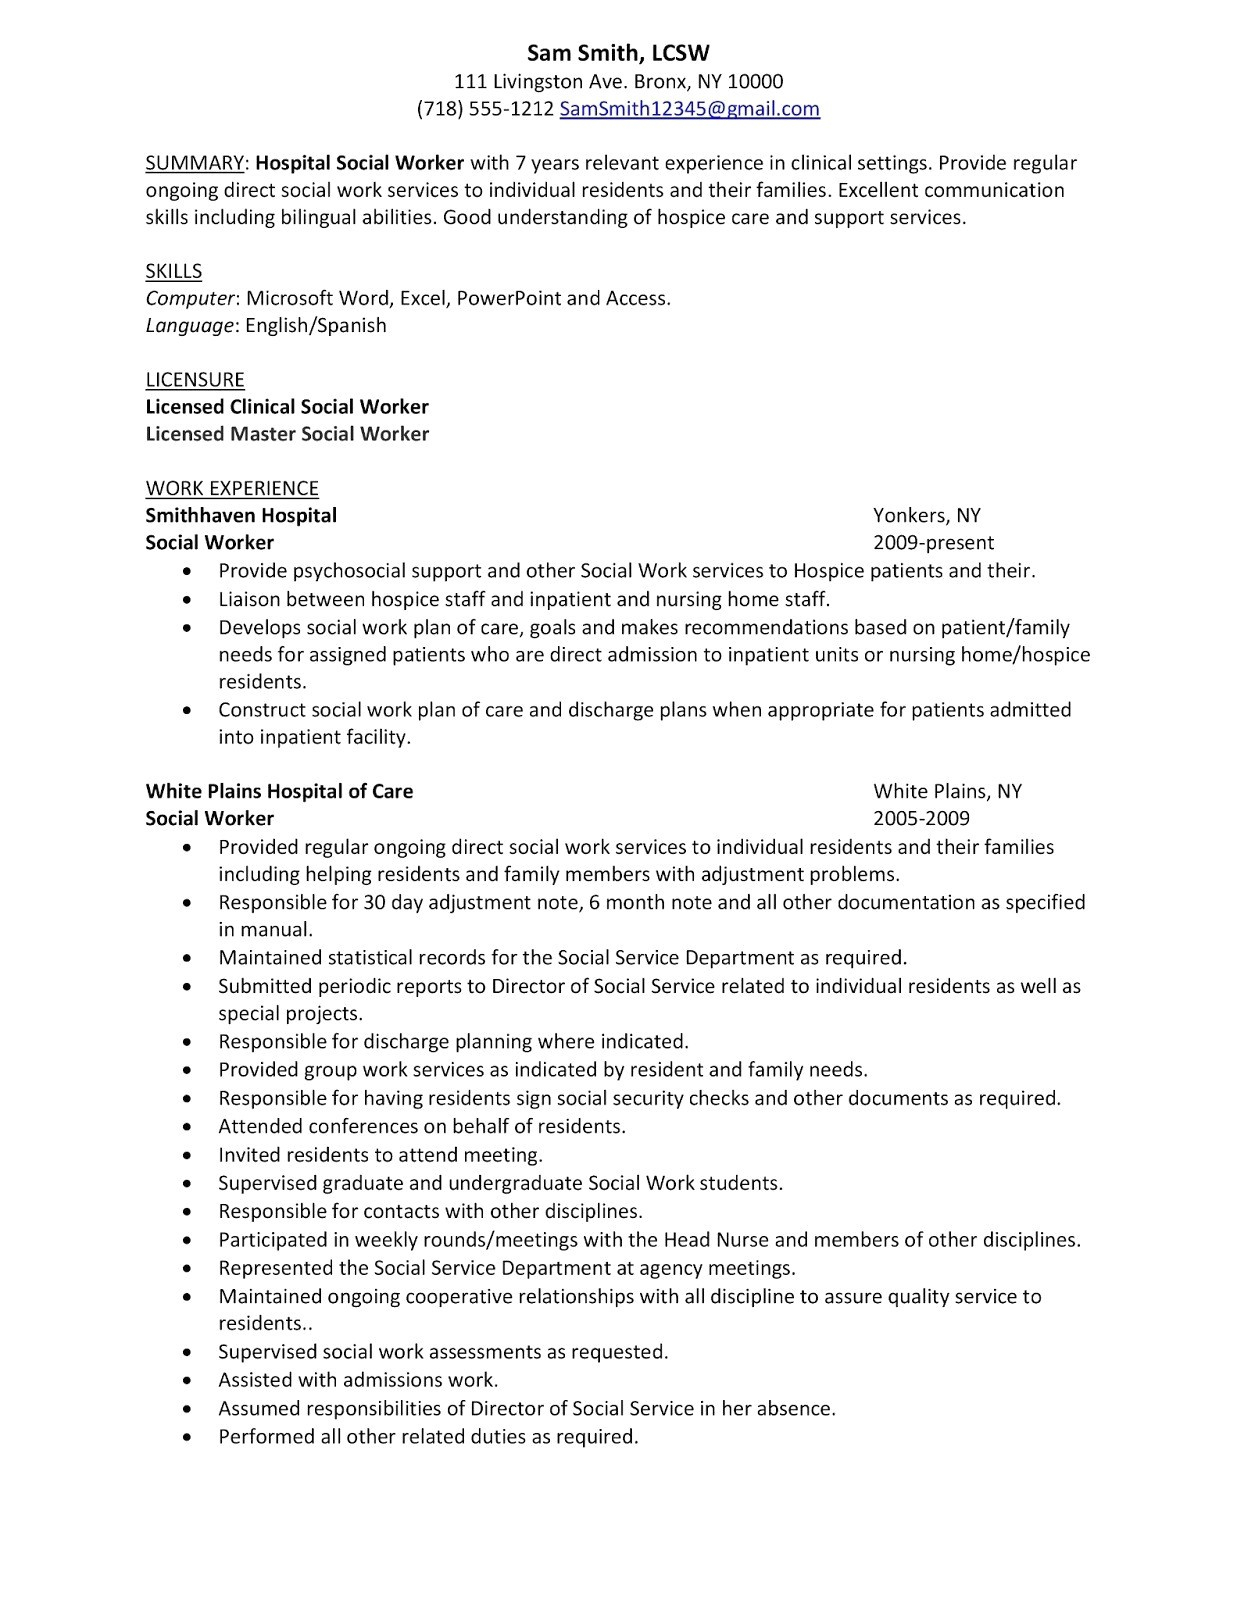 Accountant Resume Summary - Accountant Resume Examples Inspirational Finance Resume 0d